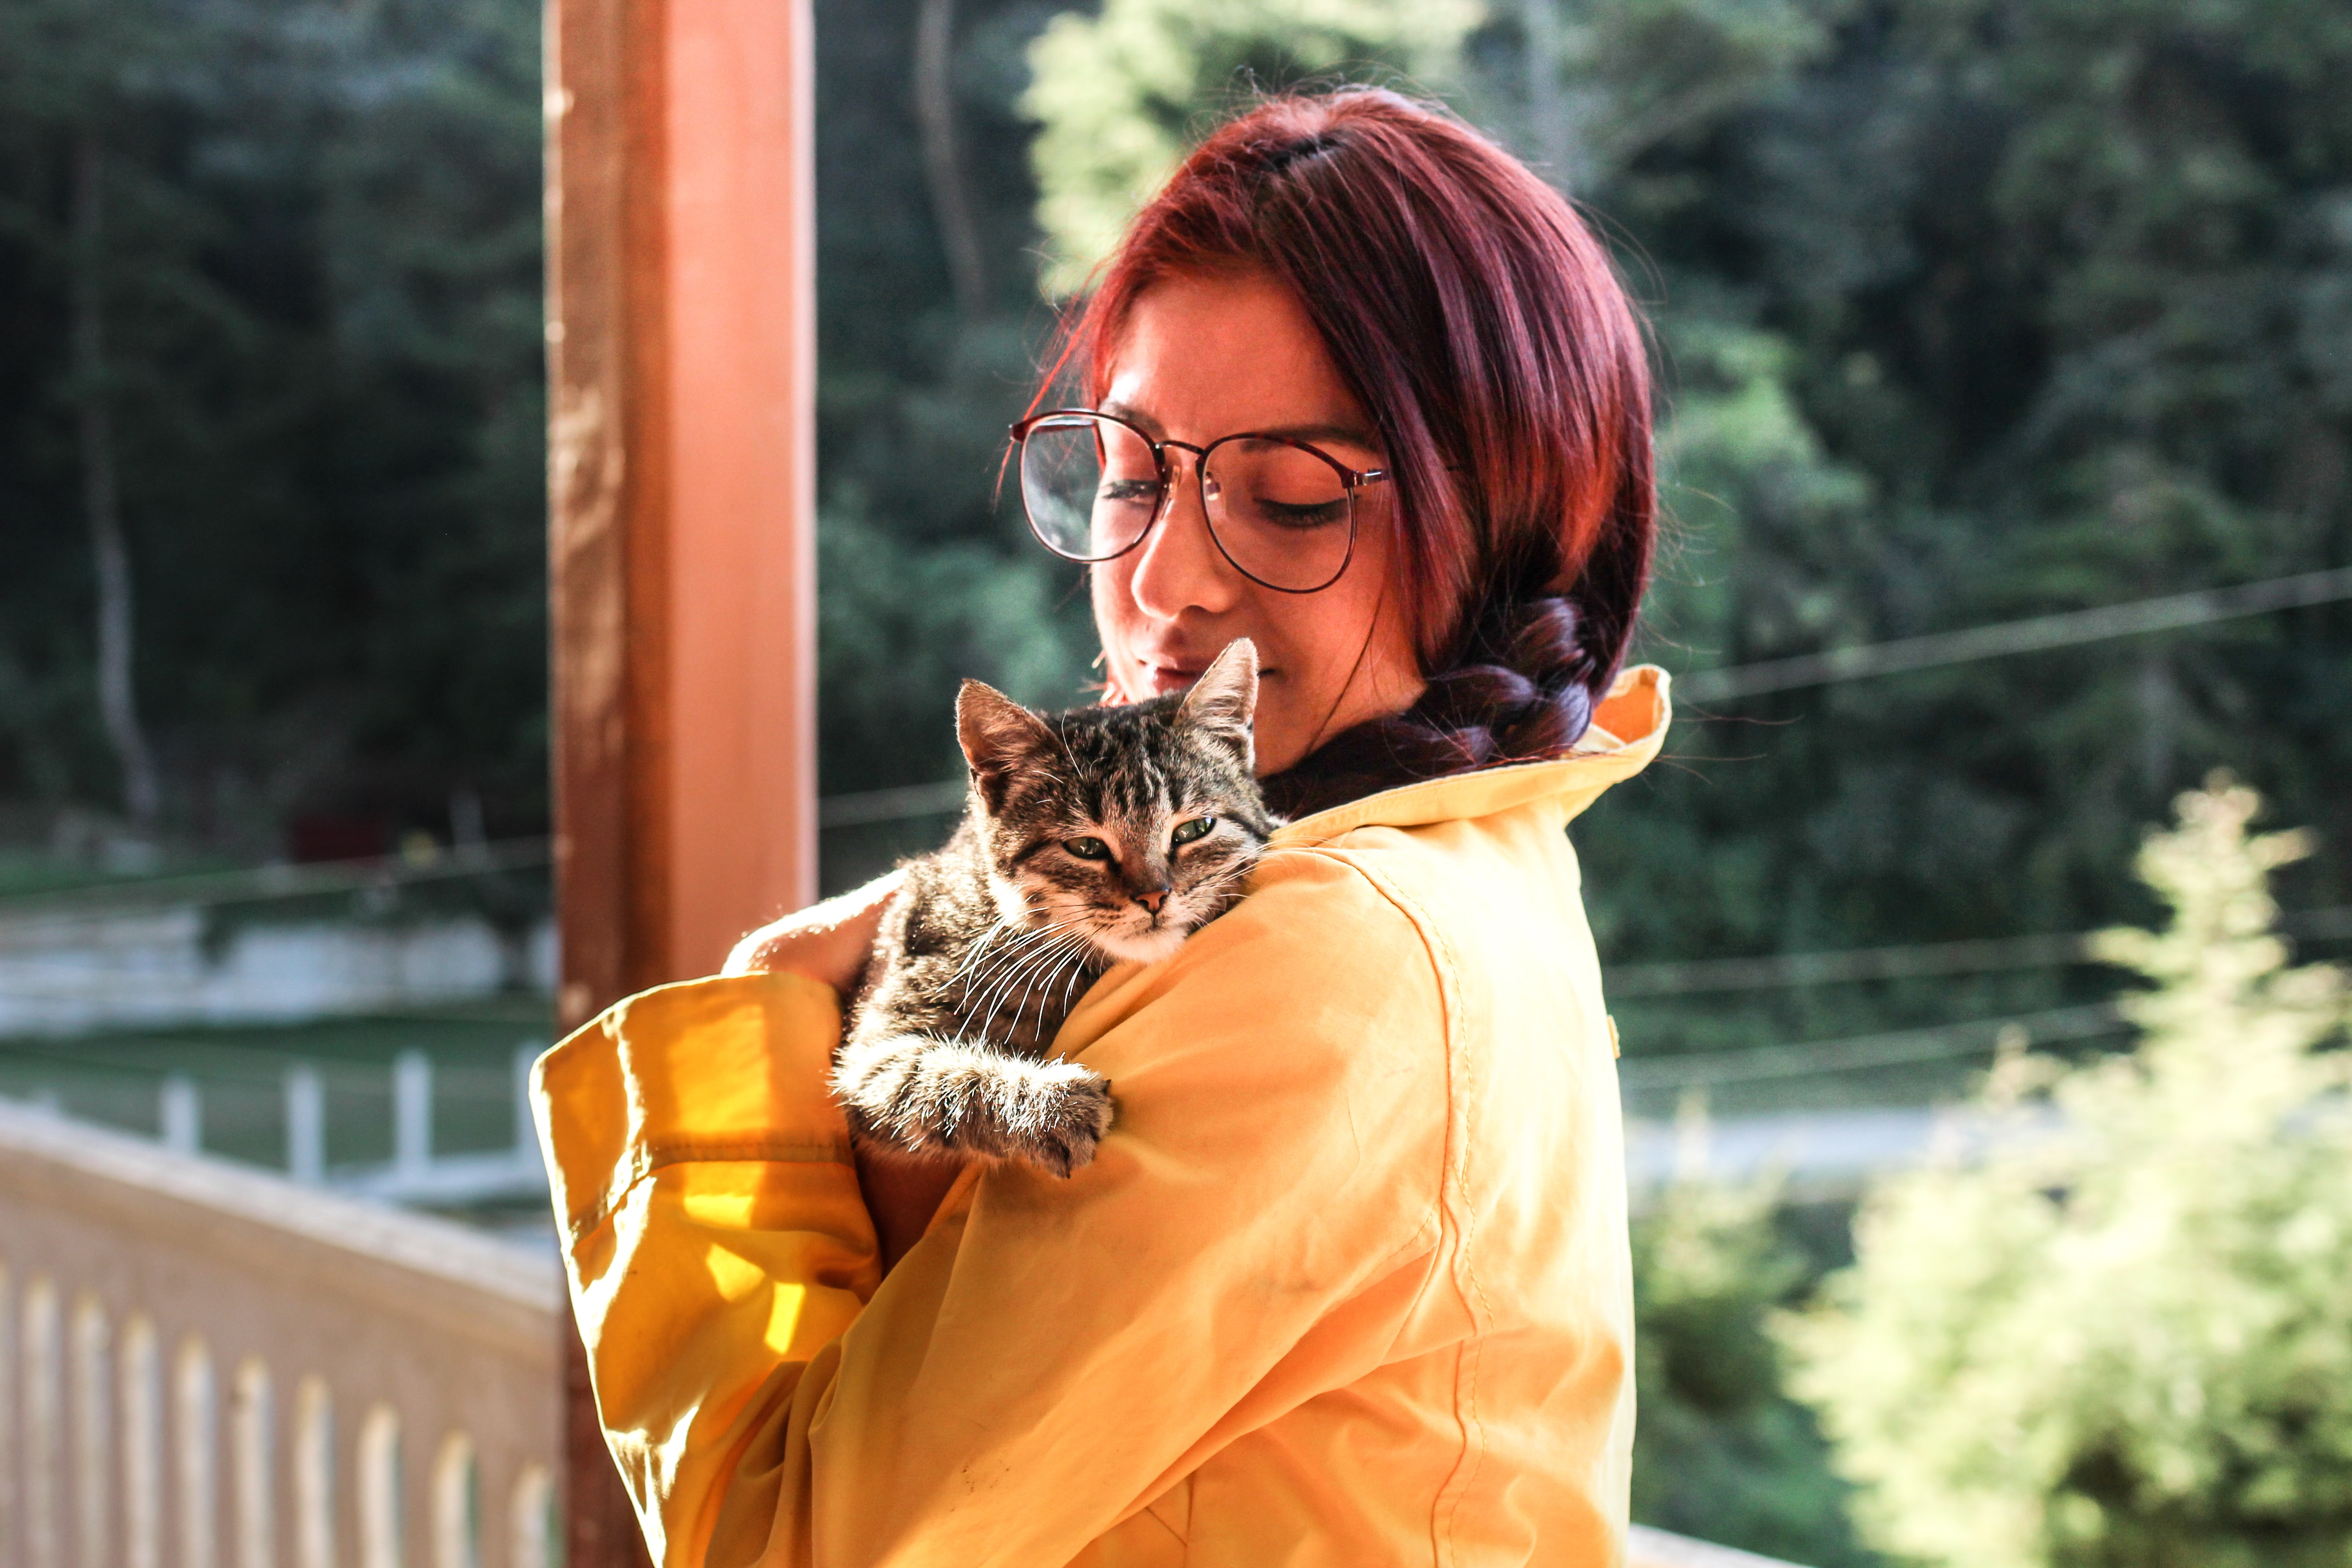 A woman in a braid and large sunglasses holds a small cat on a porch